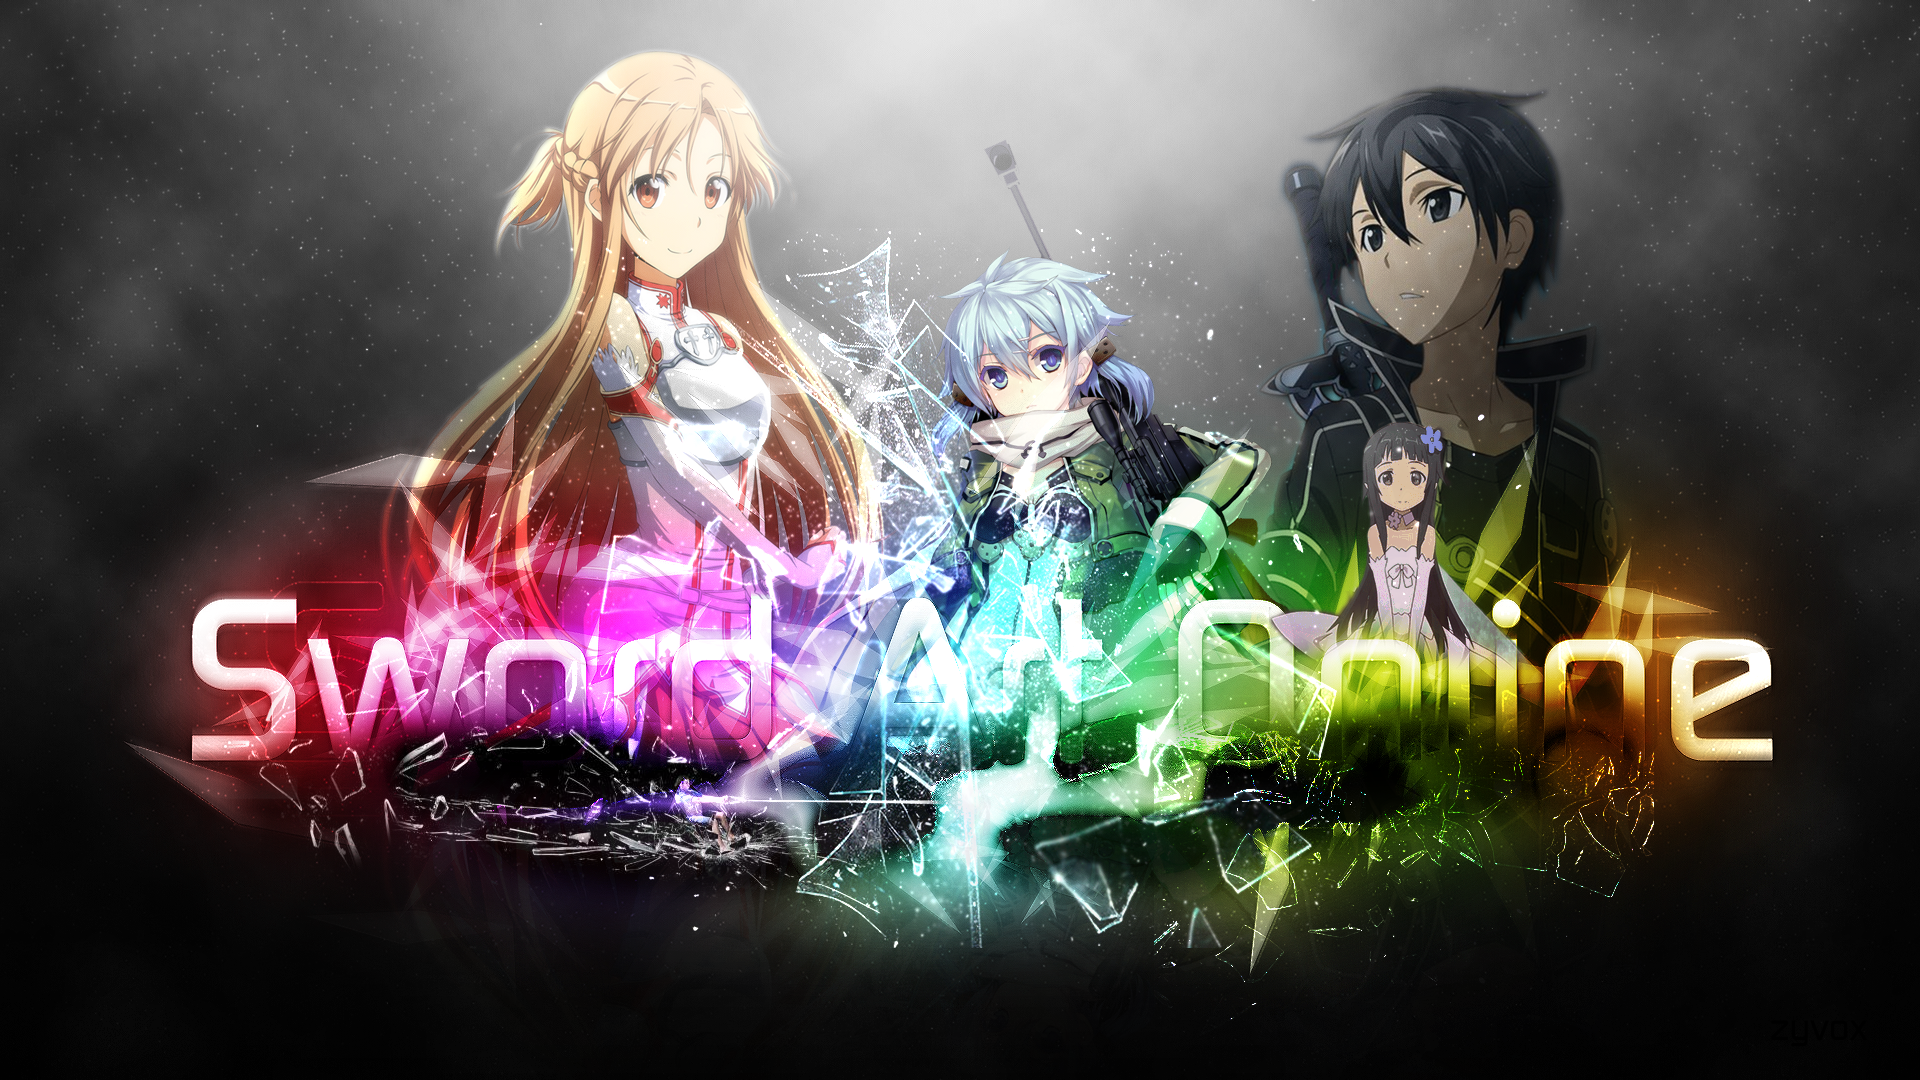 1093 kirito (sword art online) hd wallpapers | background images